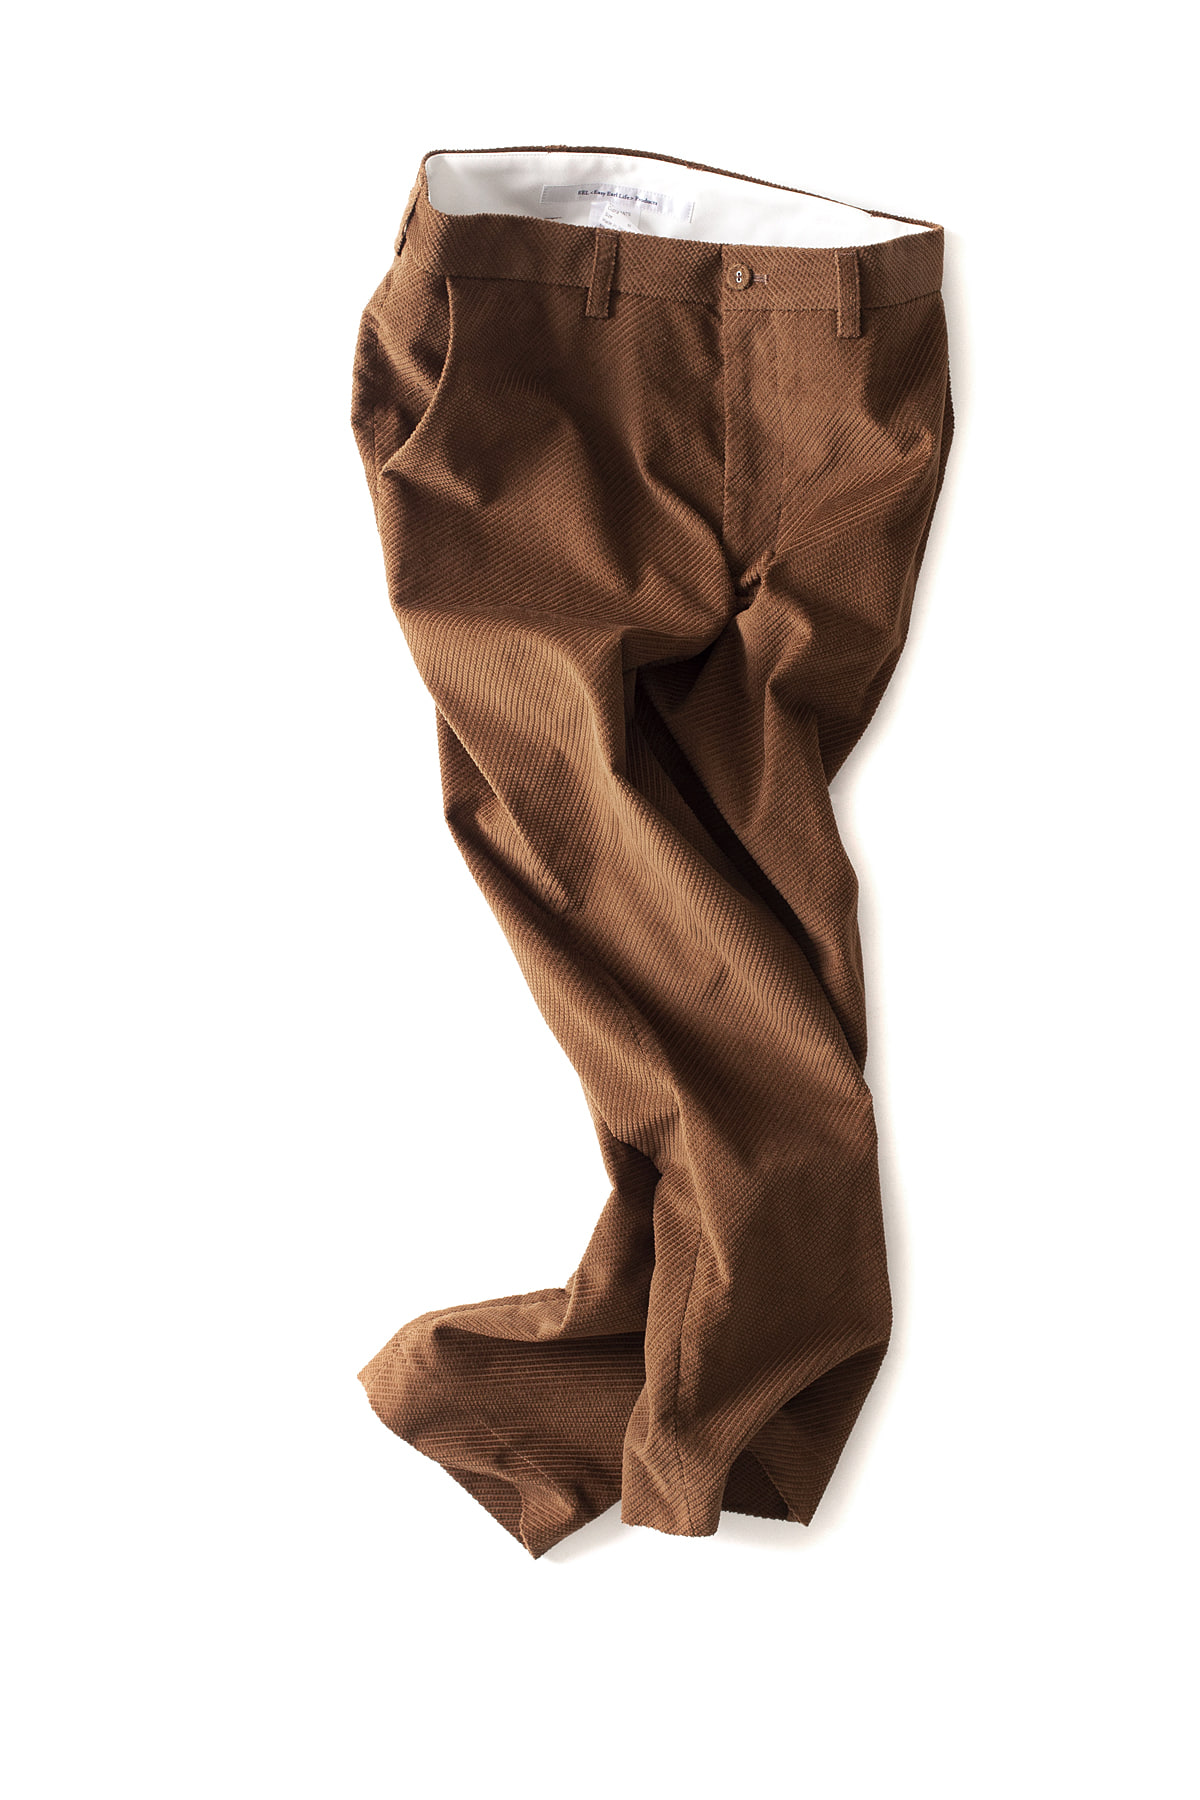 EEL : Liverpool Pants (Brown)